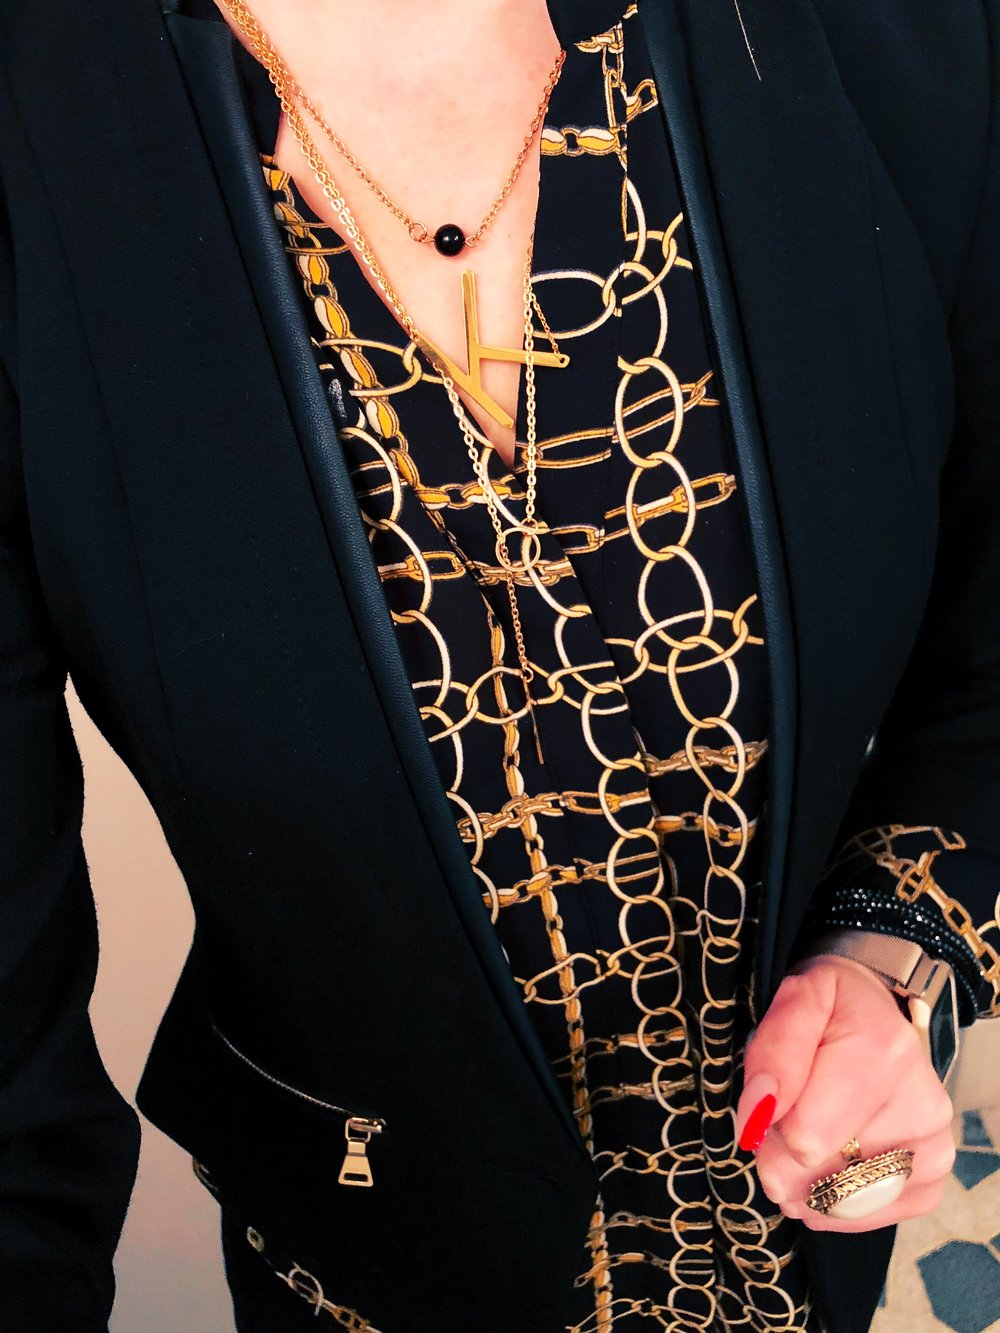 Up close on the layered necklace choices with a classic blouse and blazer at work.